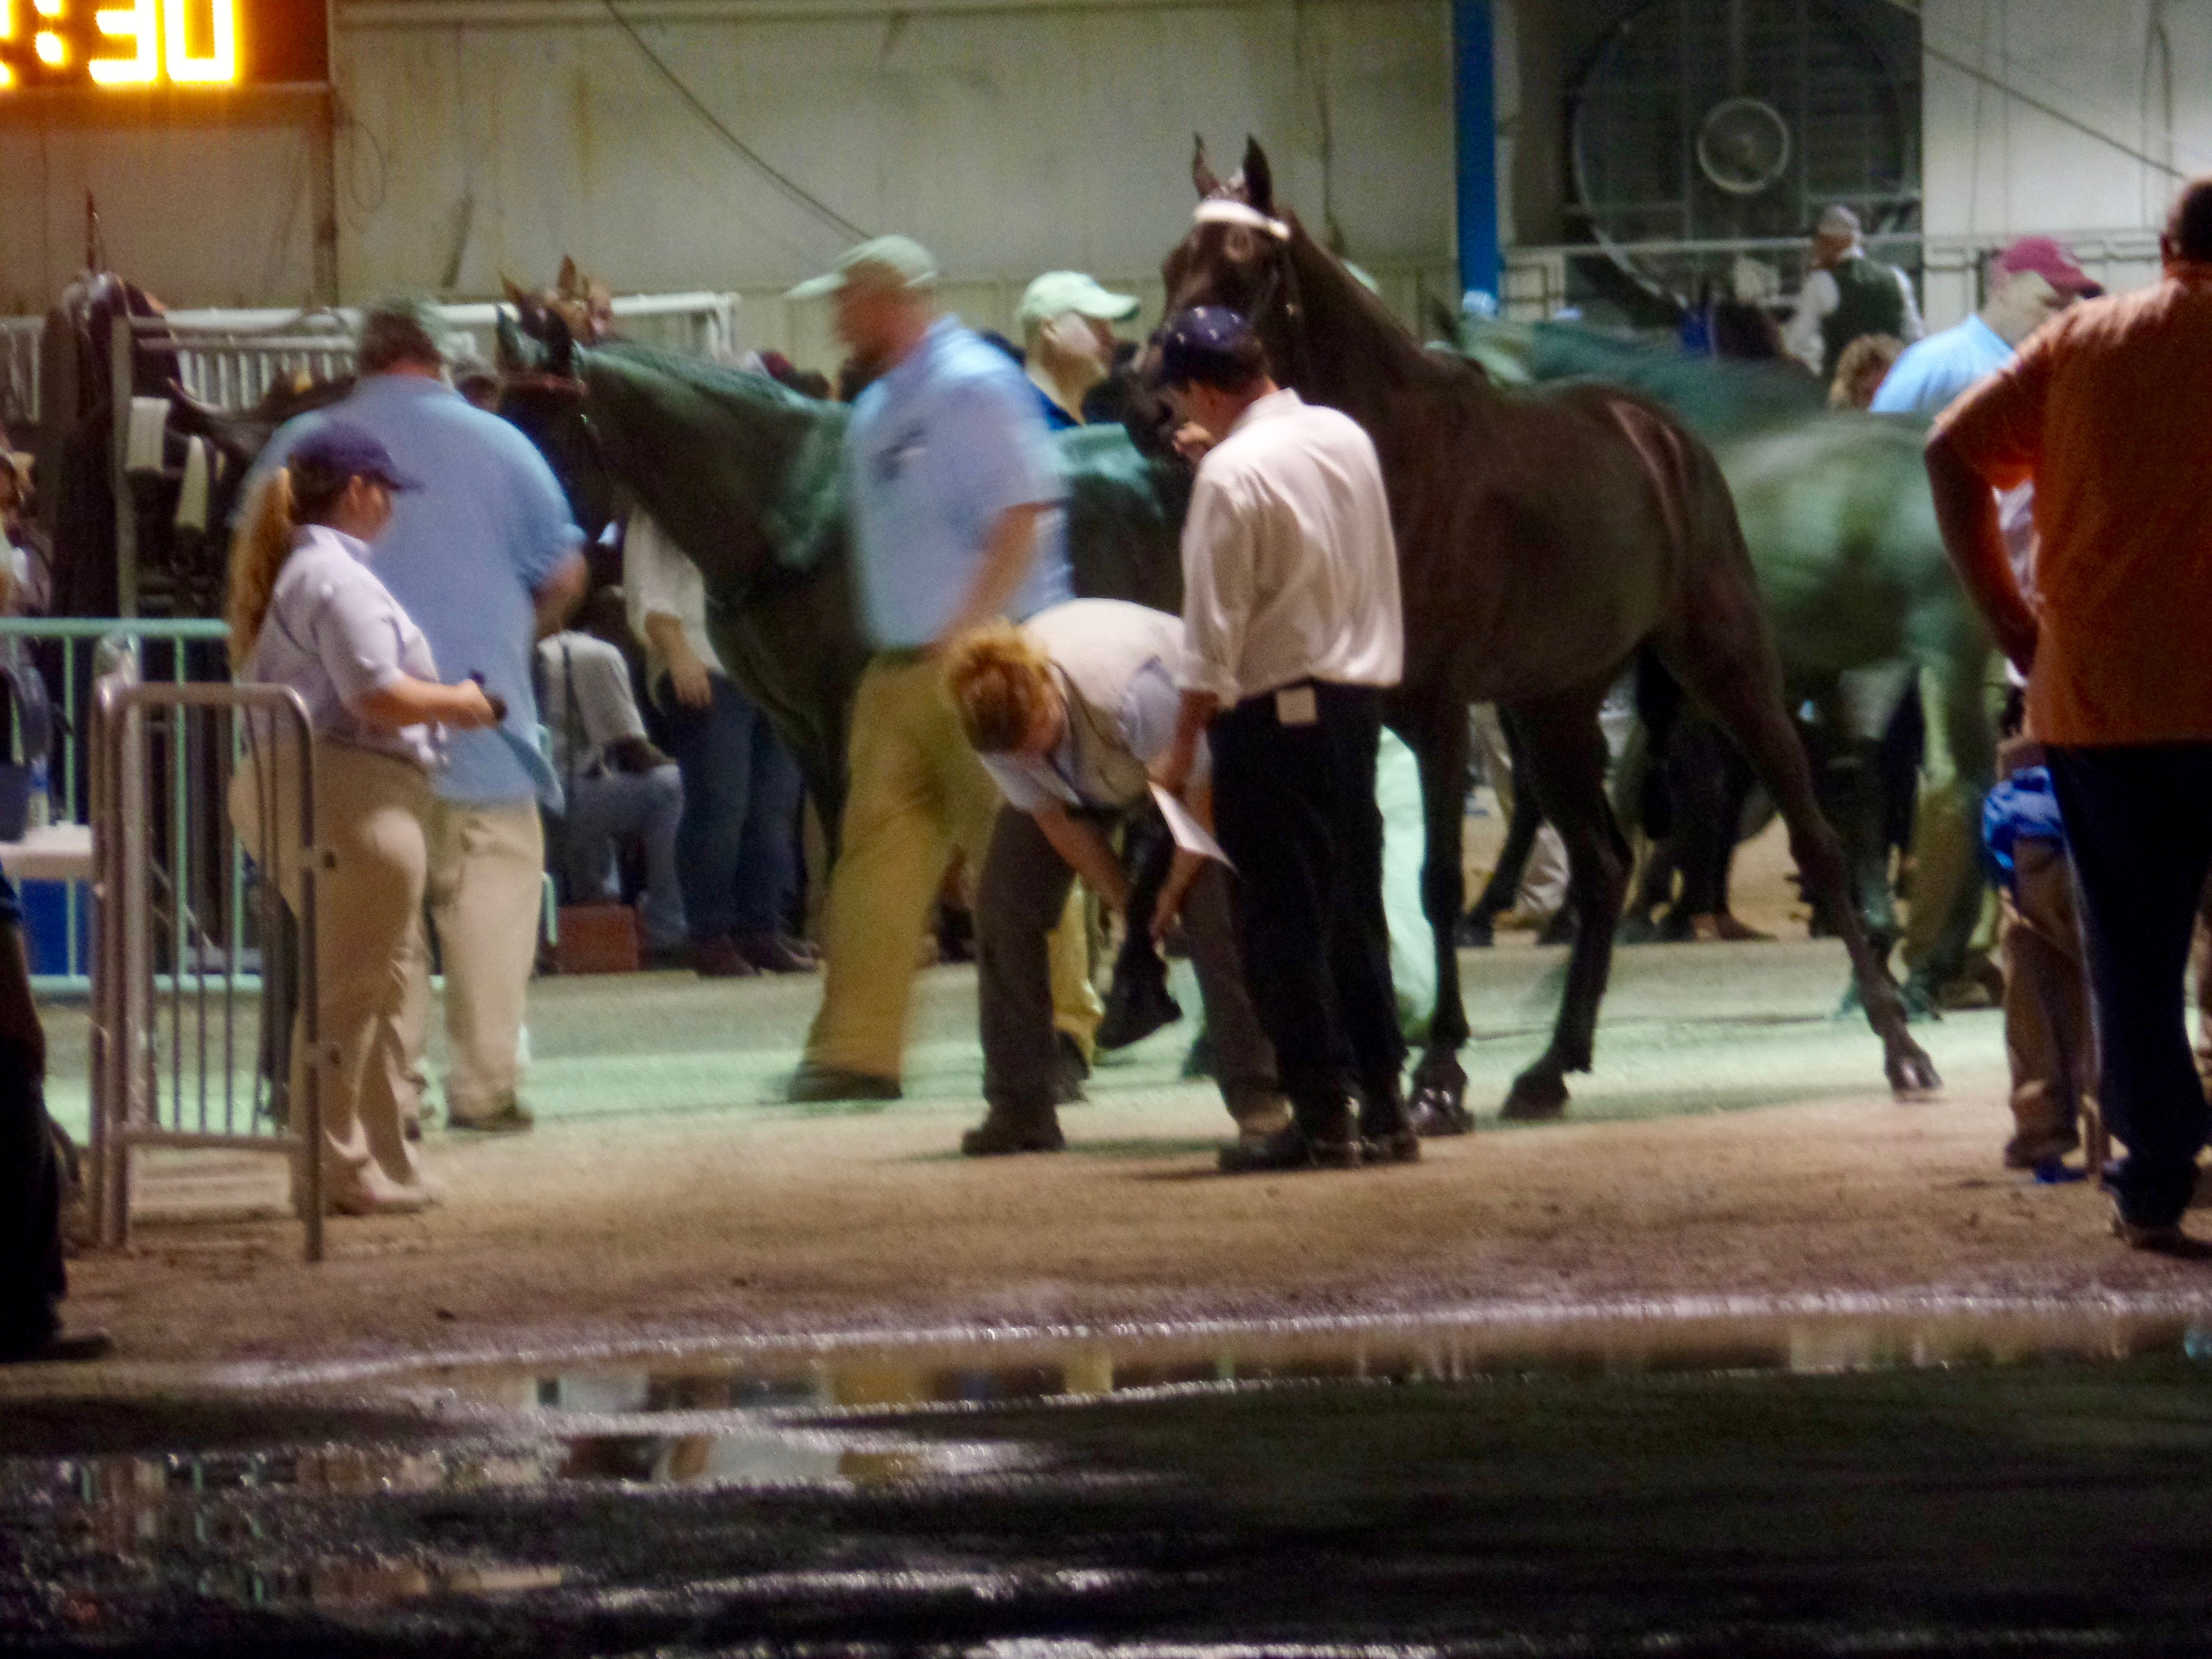 USDA Inspection - Friday, August 26, 2016 - TN Walking Horse National Celebration